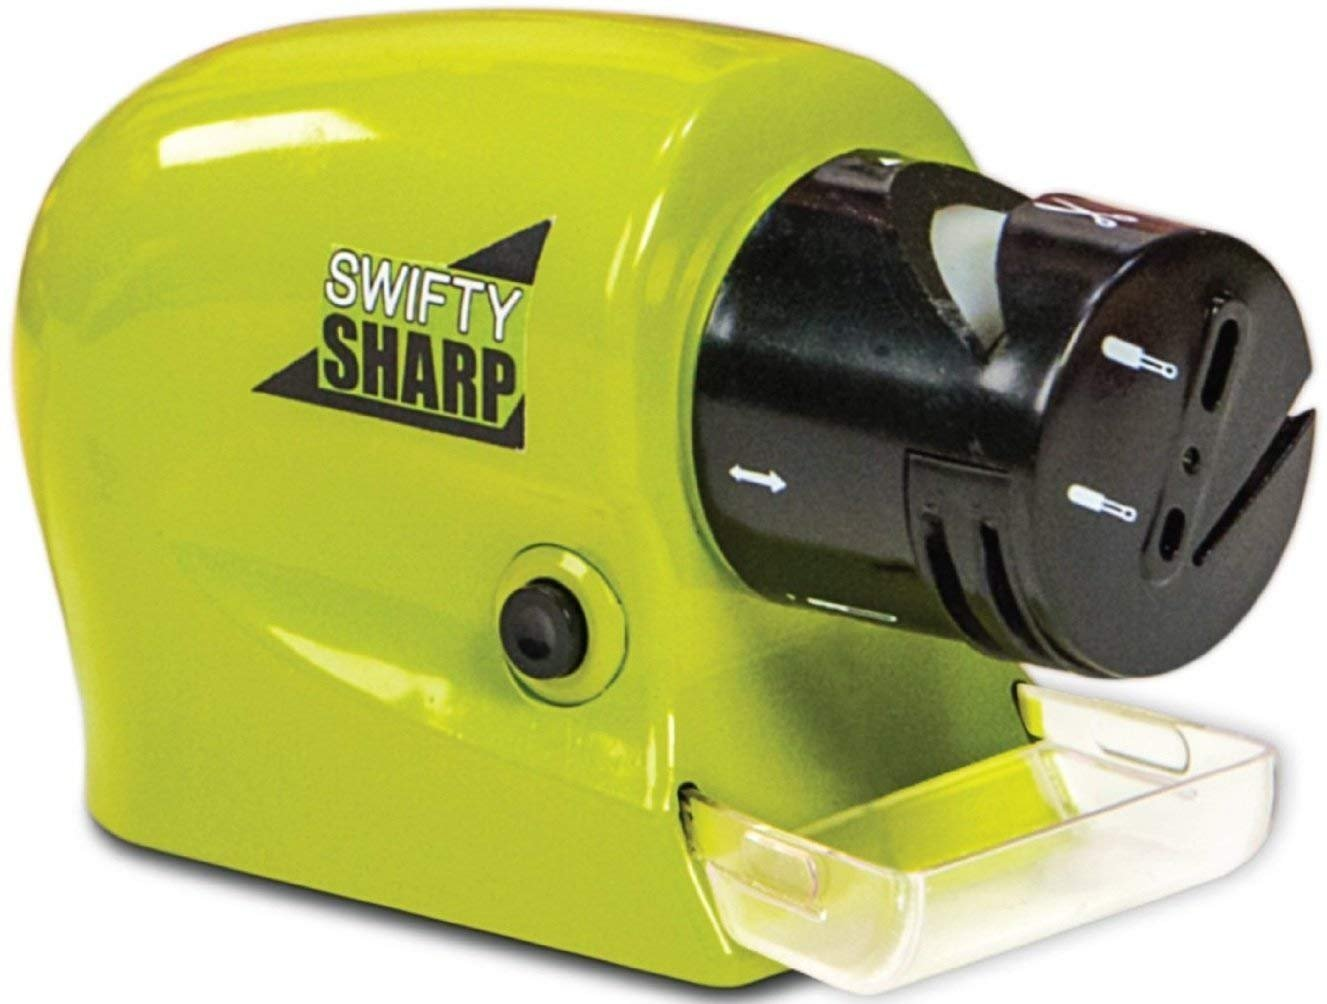 Ndier Swifty Sharp cordless, motorizzato lama affilacoltelli